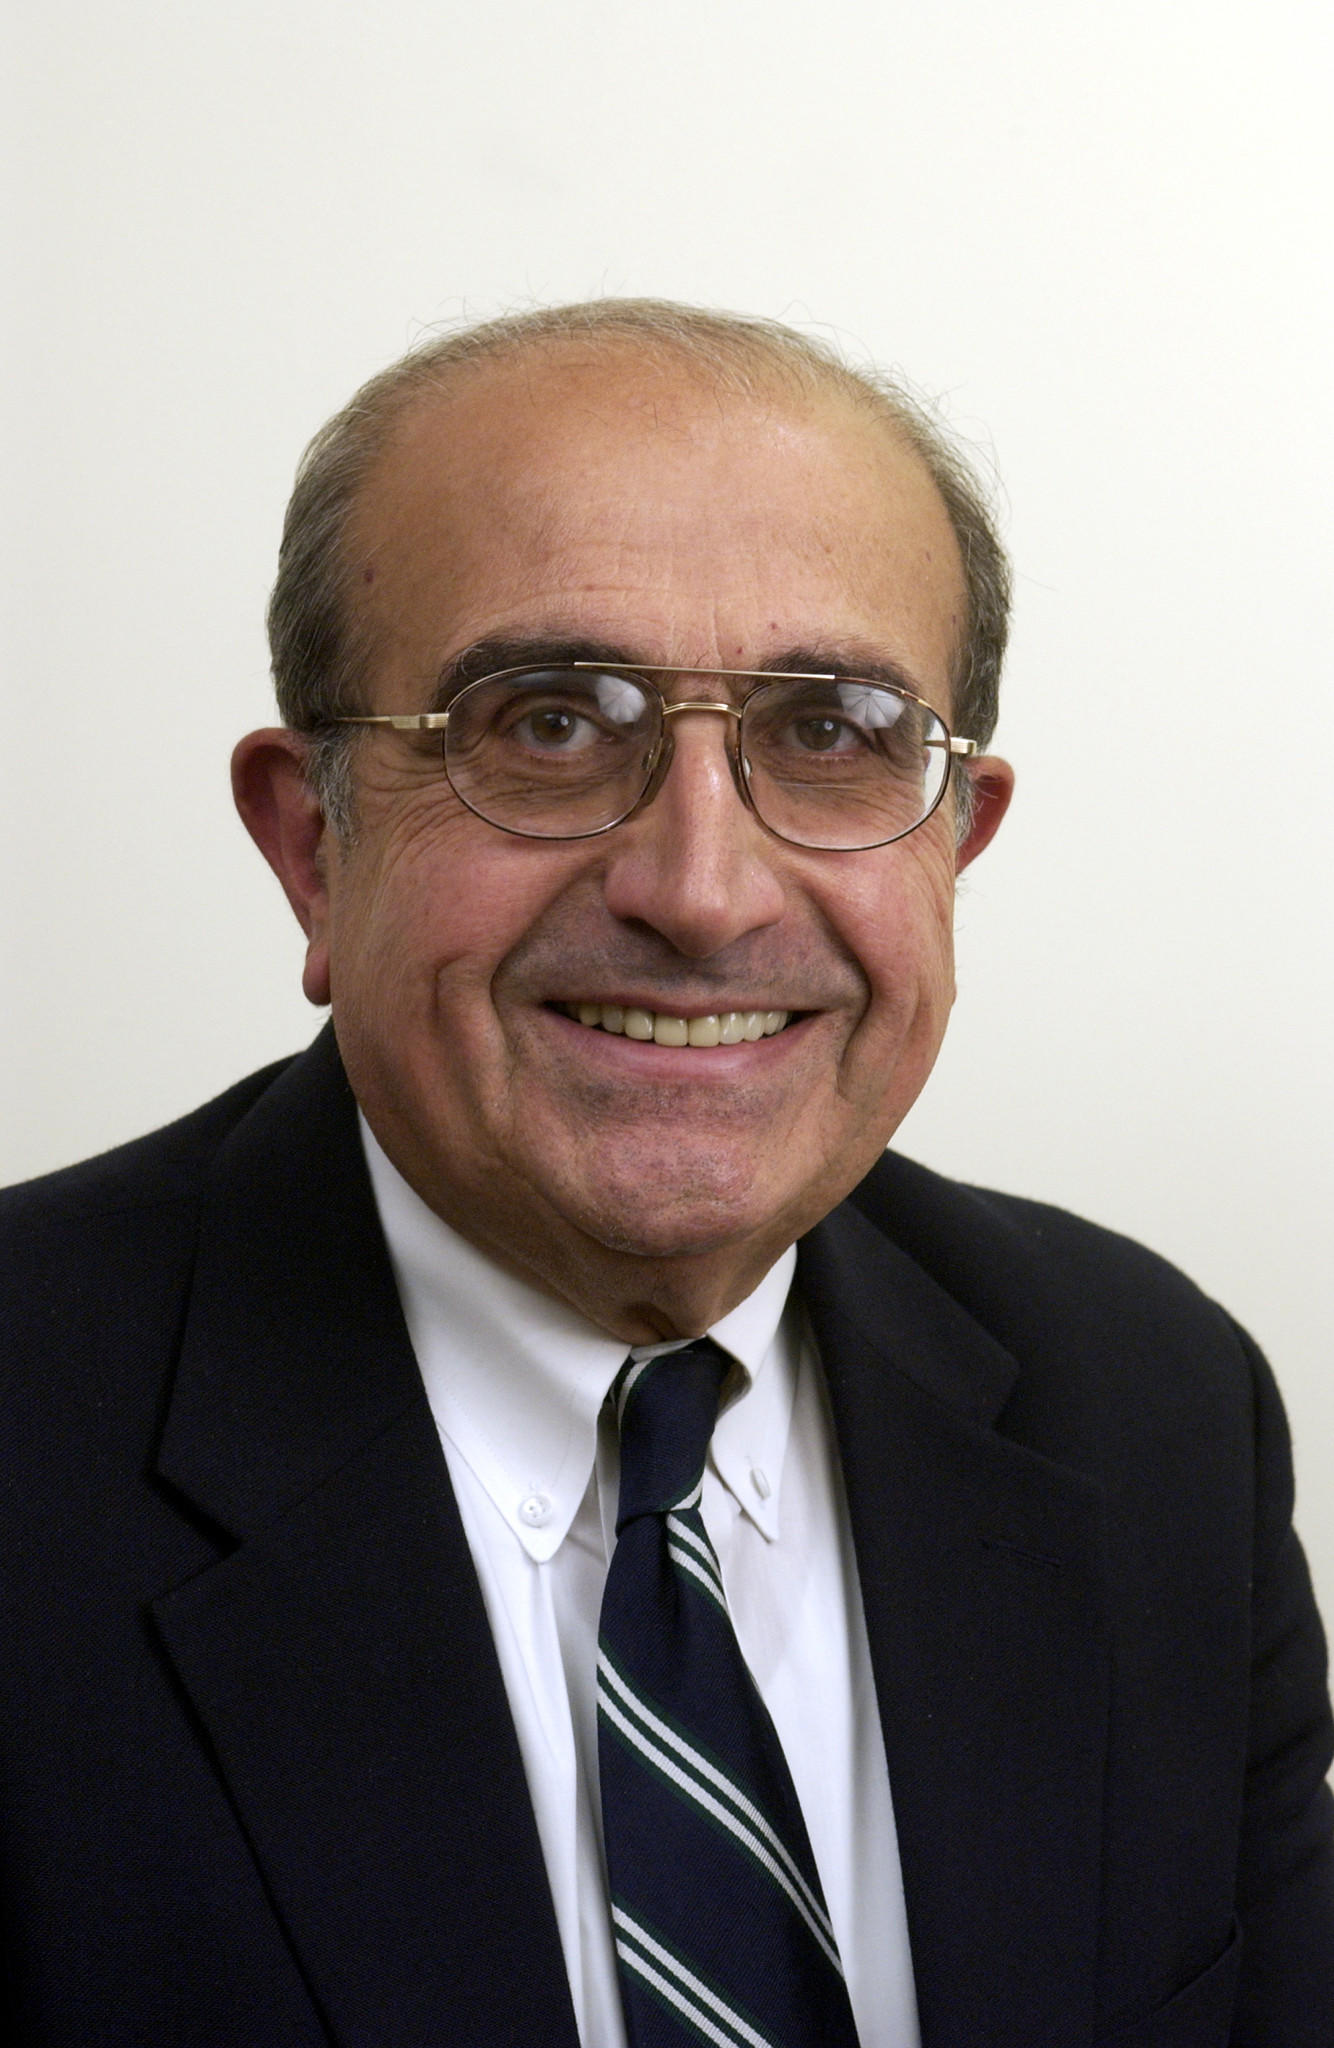 Attorney Harry N. Mazadoorian is the recipient of the Connecticut Bar Association's John Eldred Shields Distinguished Professional Service Award.